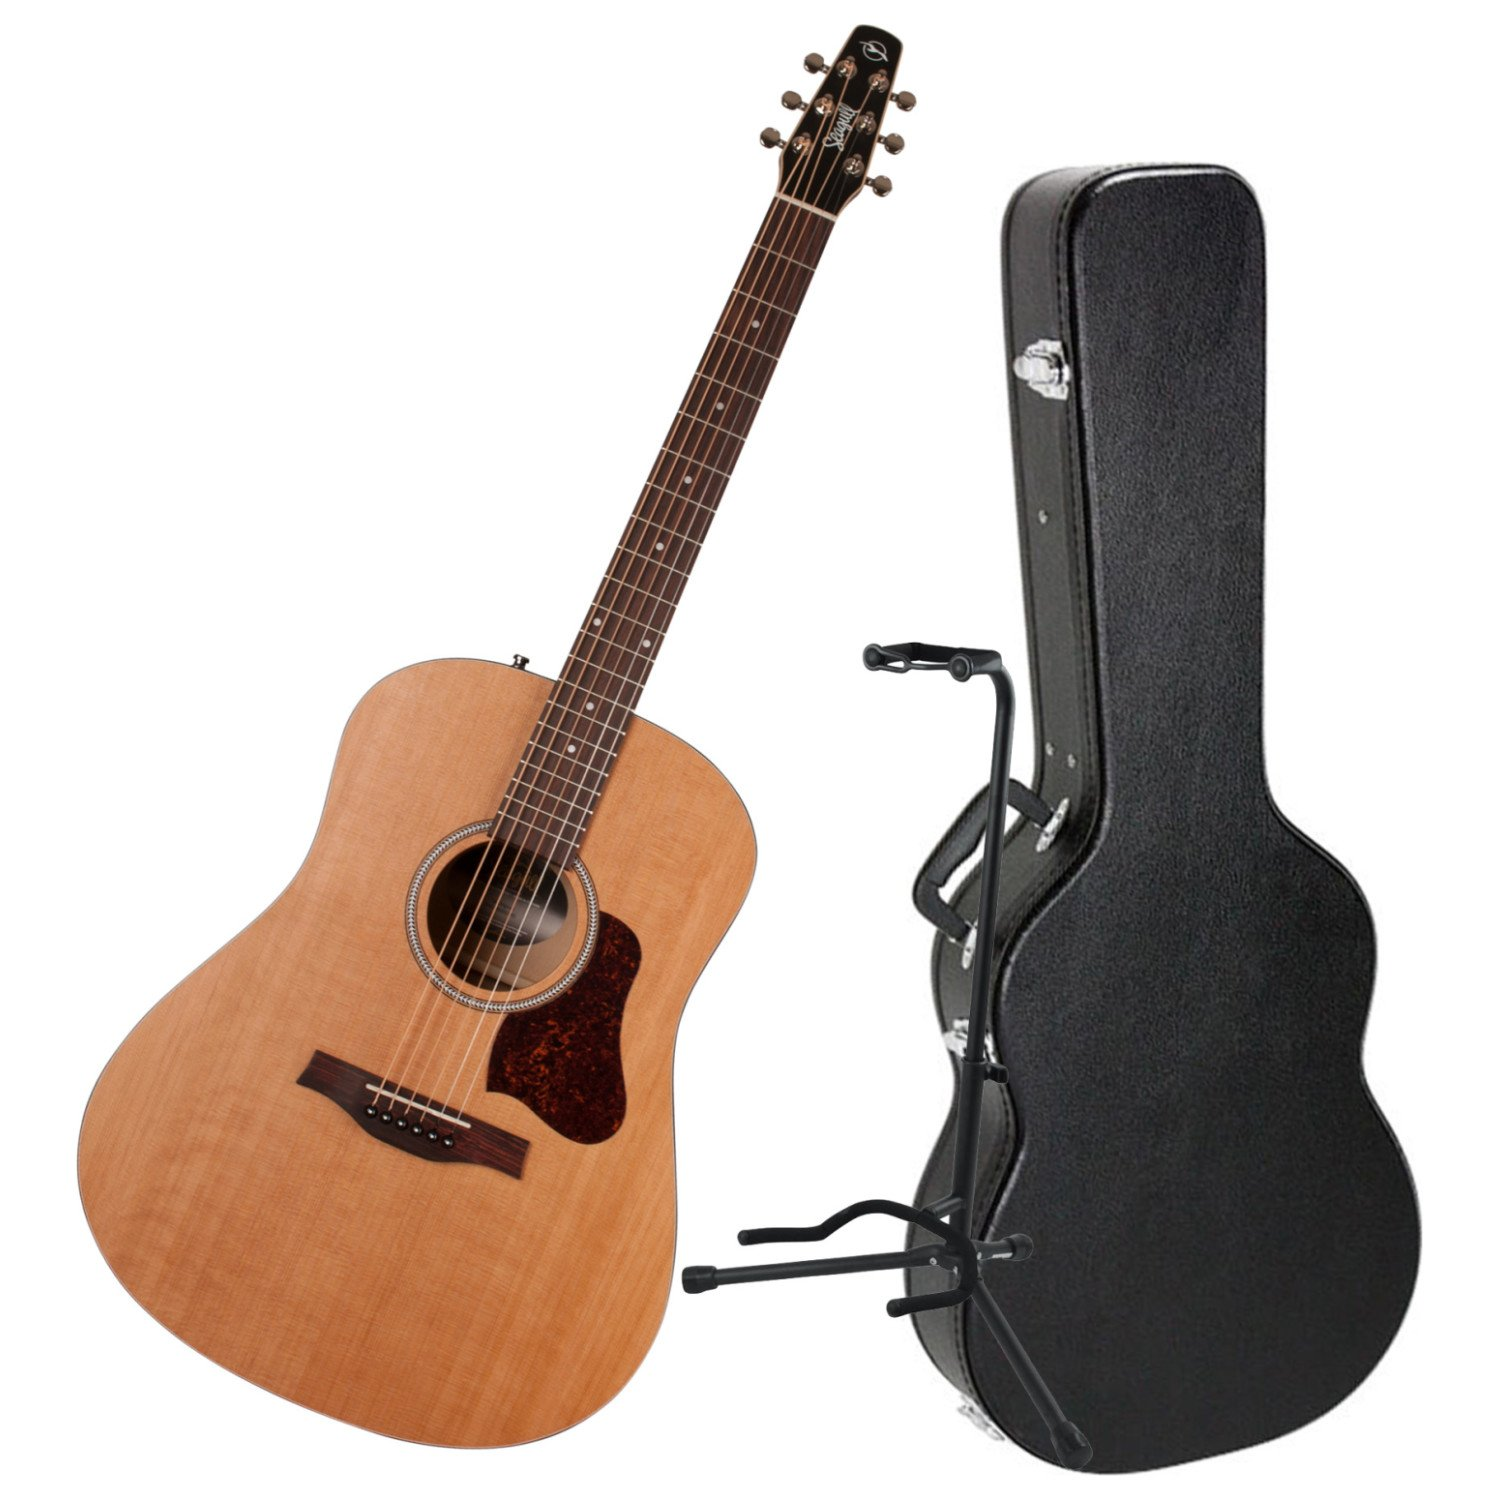 Seagull S6 ''The Original'' Acoustic Guitar w/Dreadnought Hardshell Case and Guitar Stand